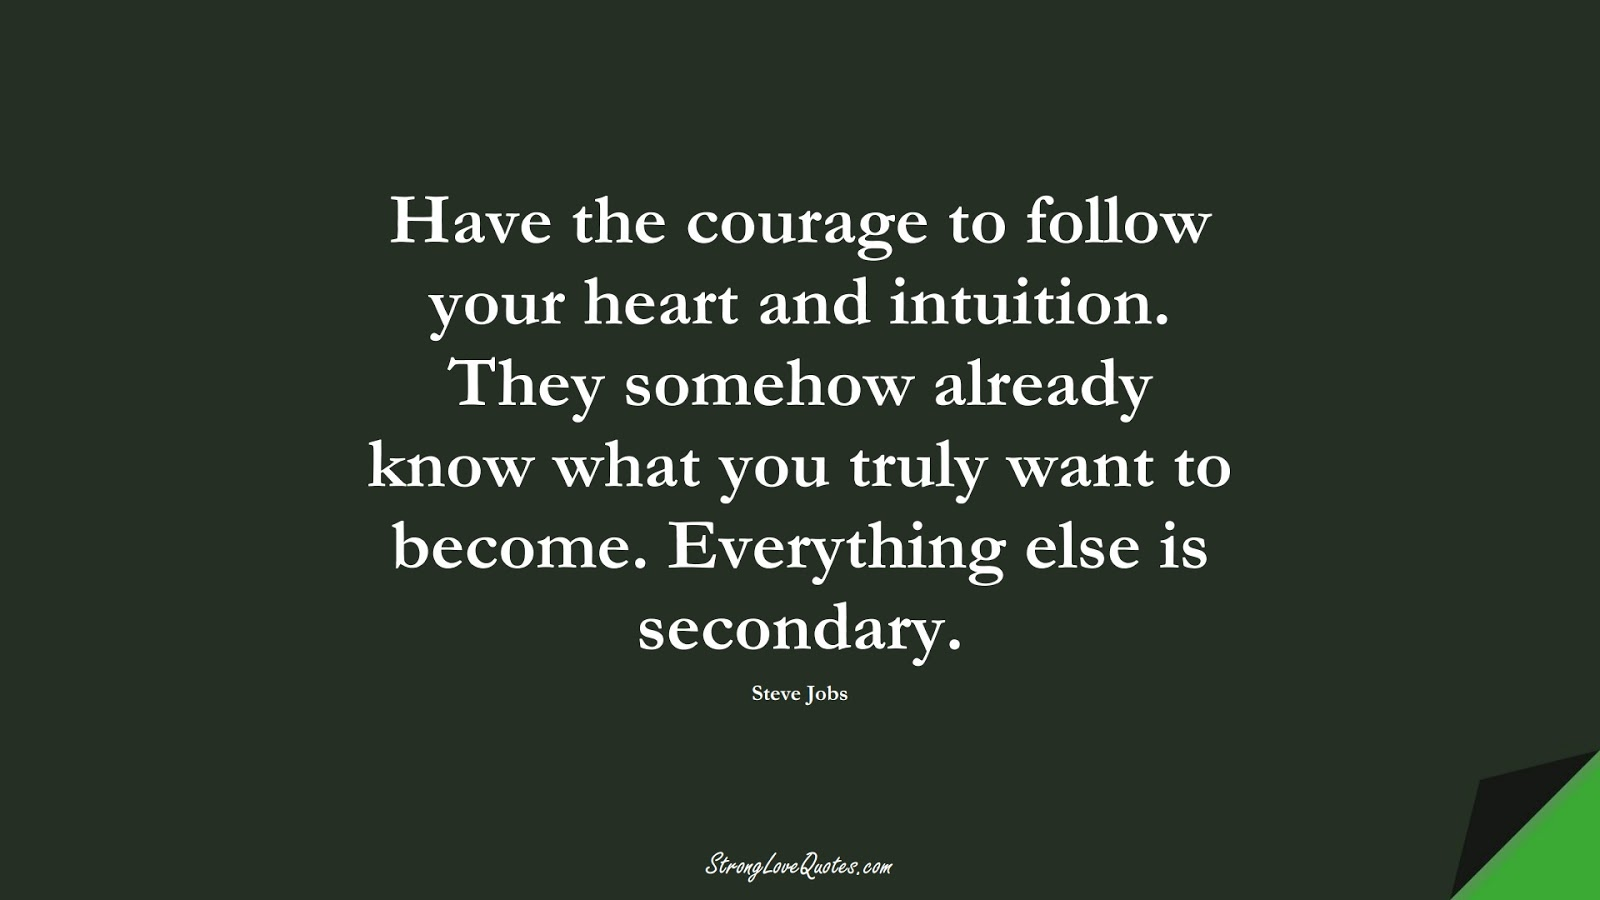 Have the courage to follow your heart and intuition. They somehow already know what you truly want to become. Everything else is secondary. (Steve Jobs);  #KnowledgeQuotes